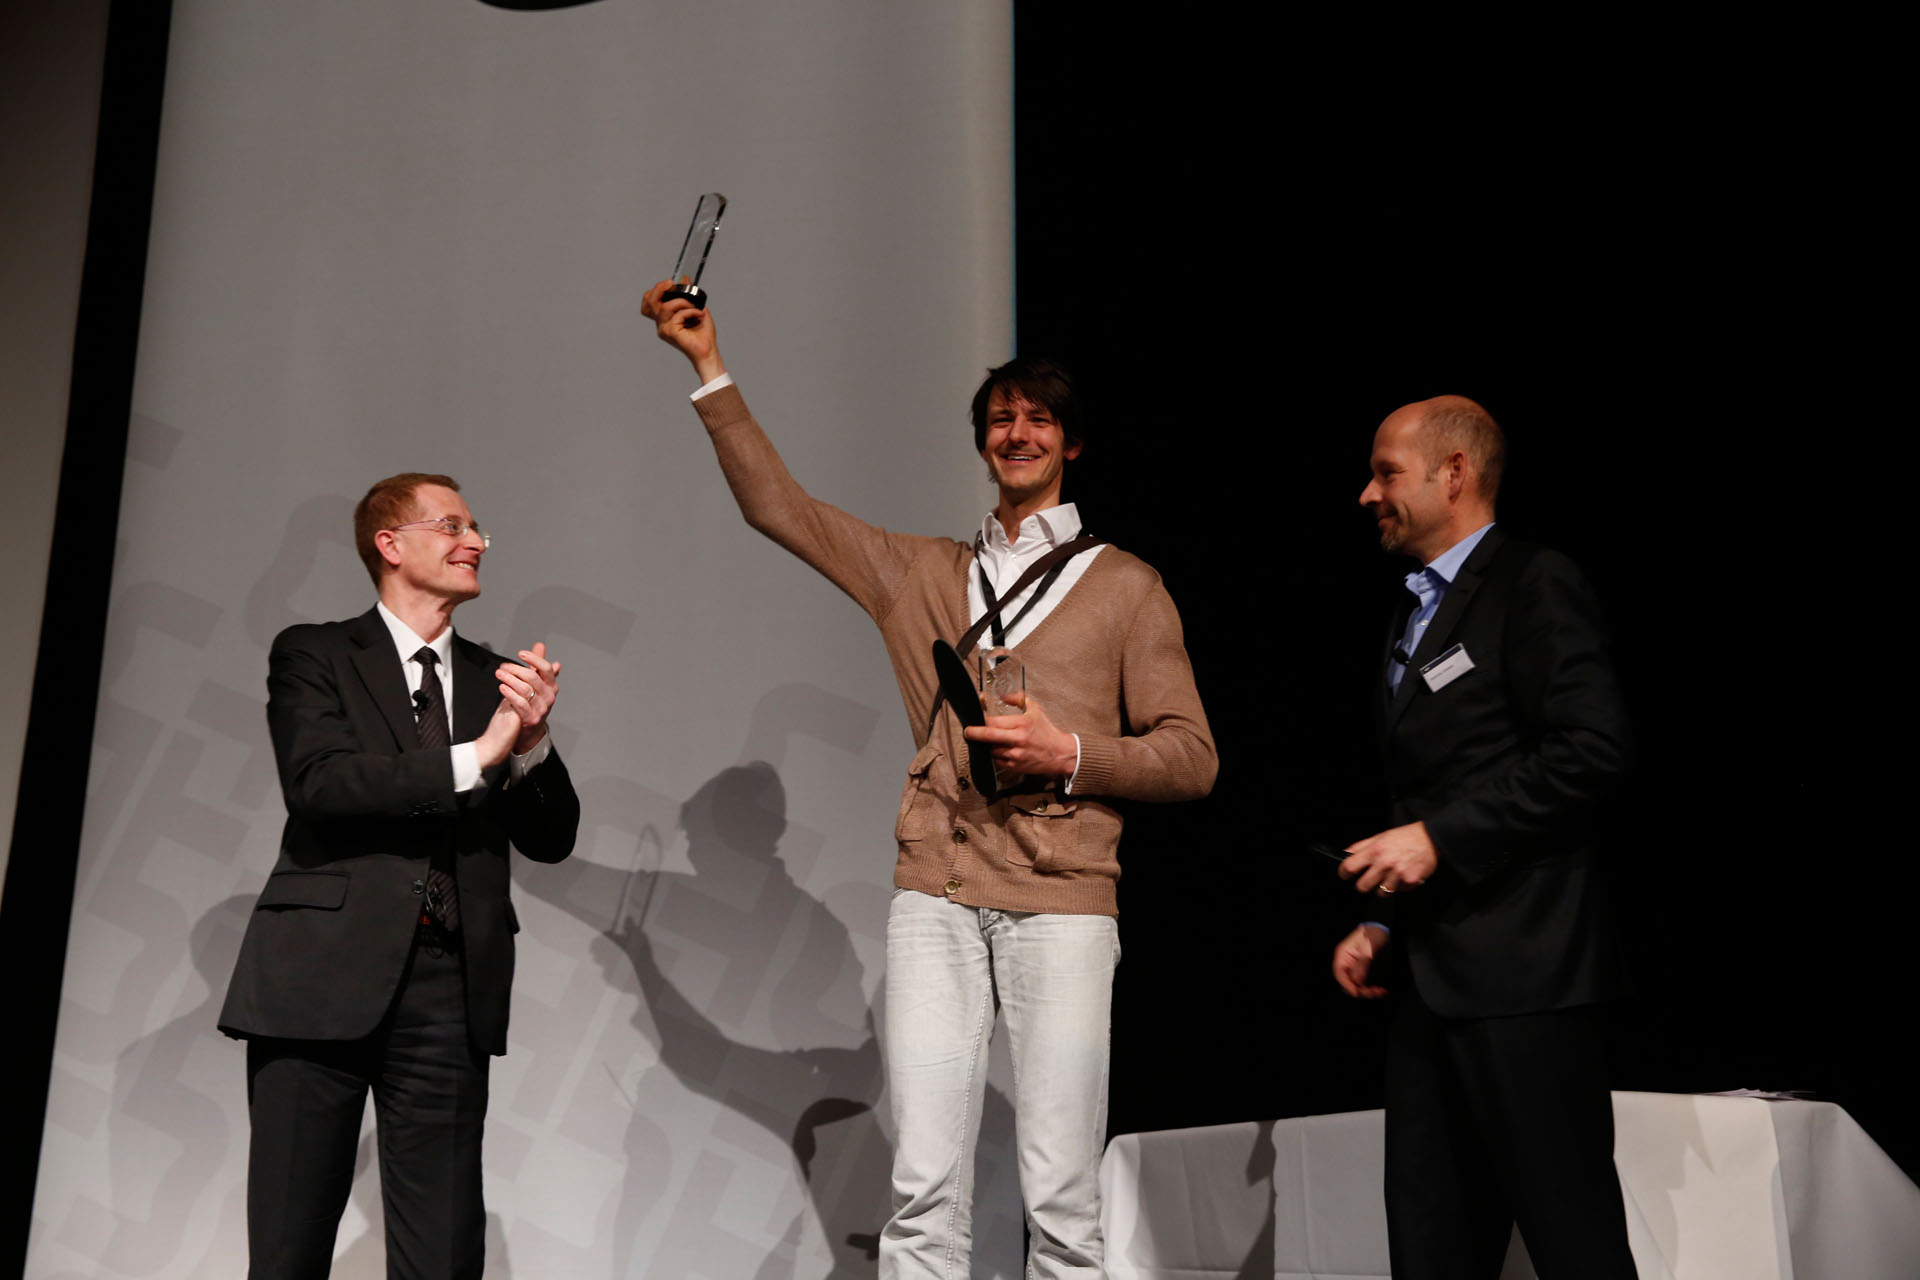 Moticon, Innovator of the Year 2014